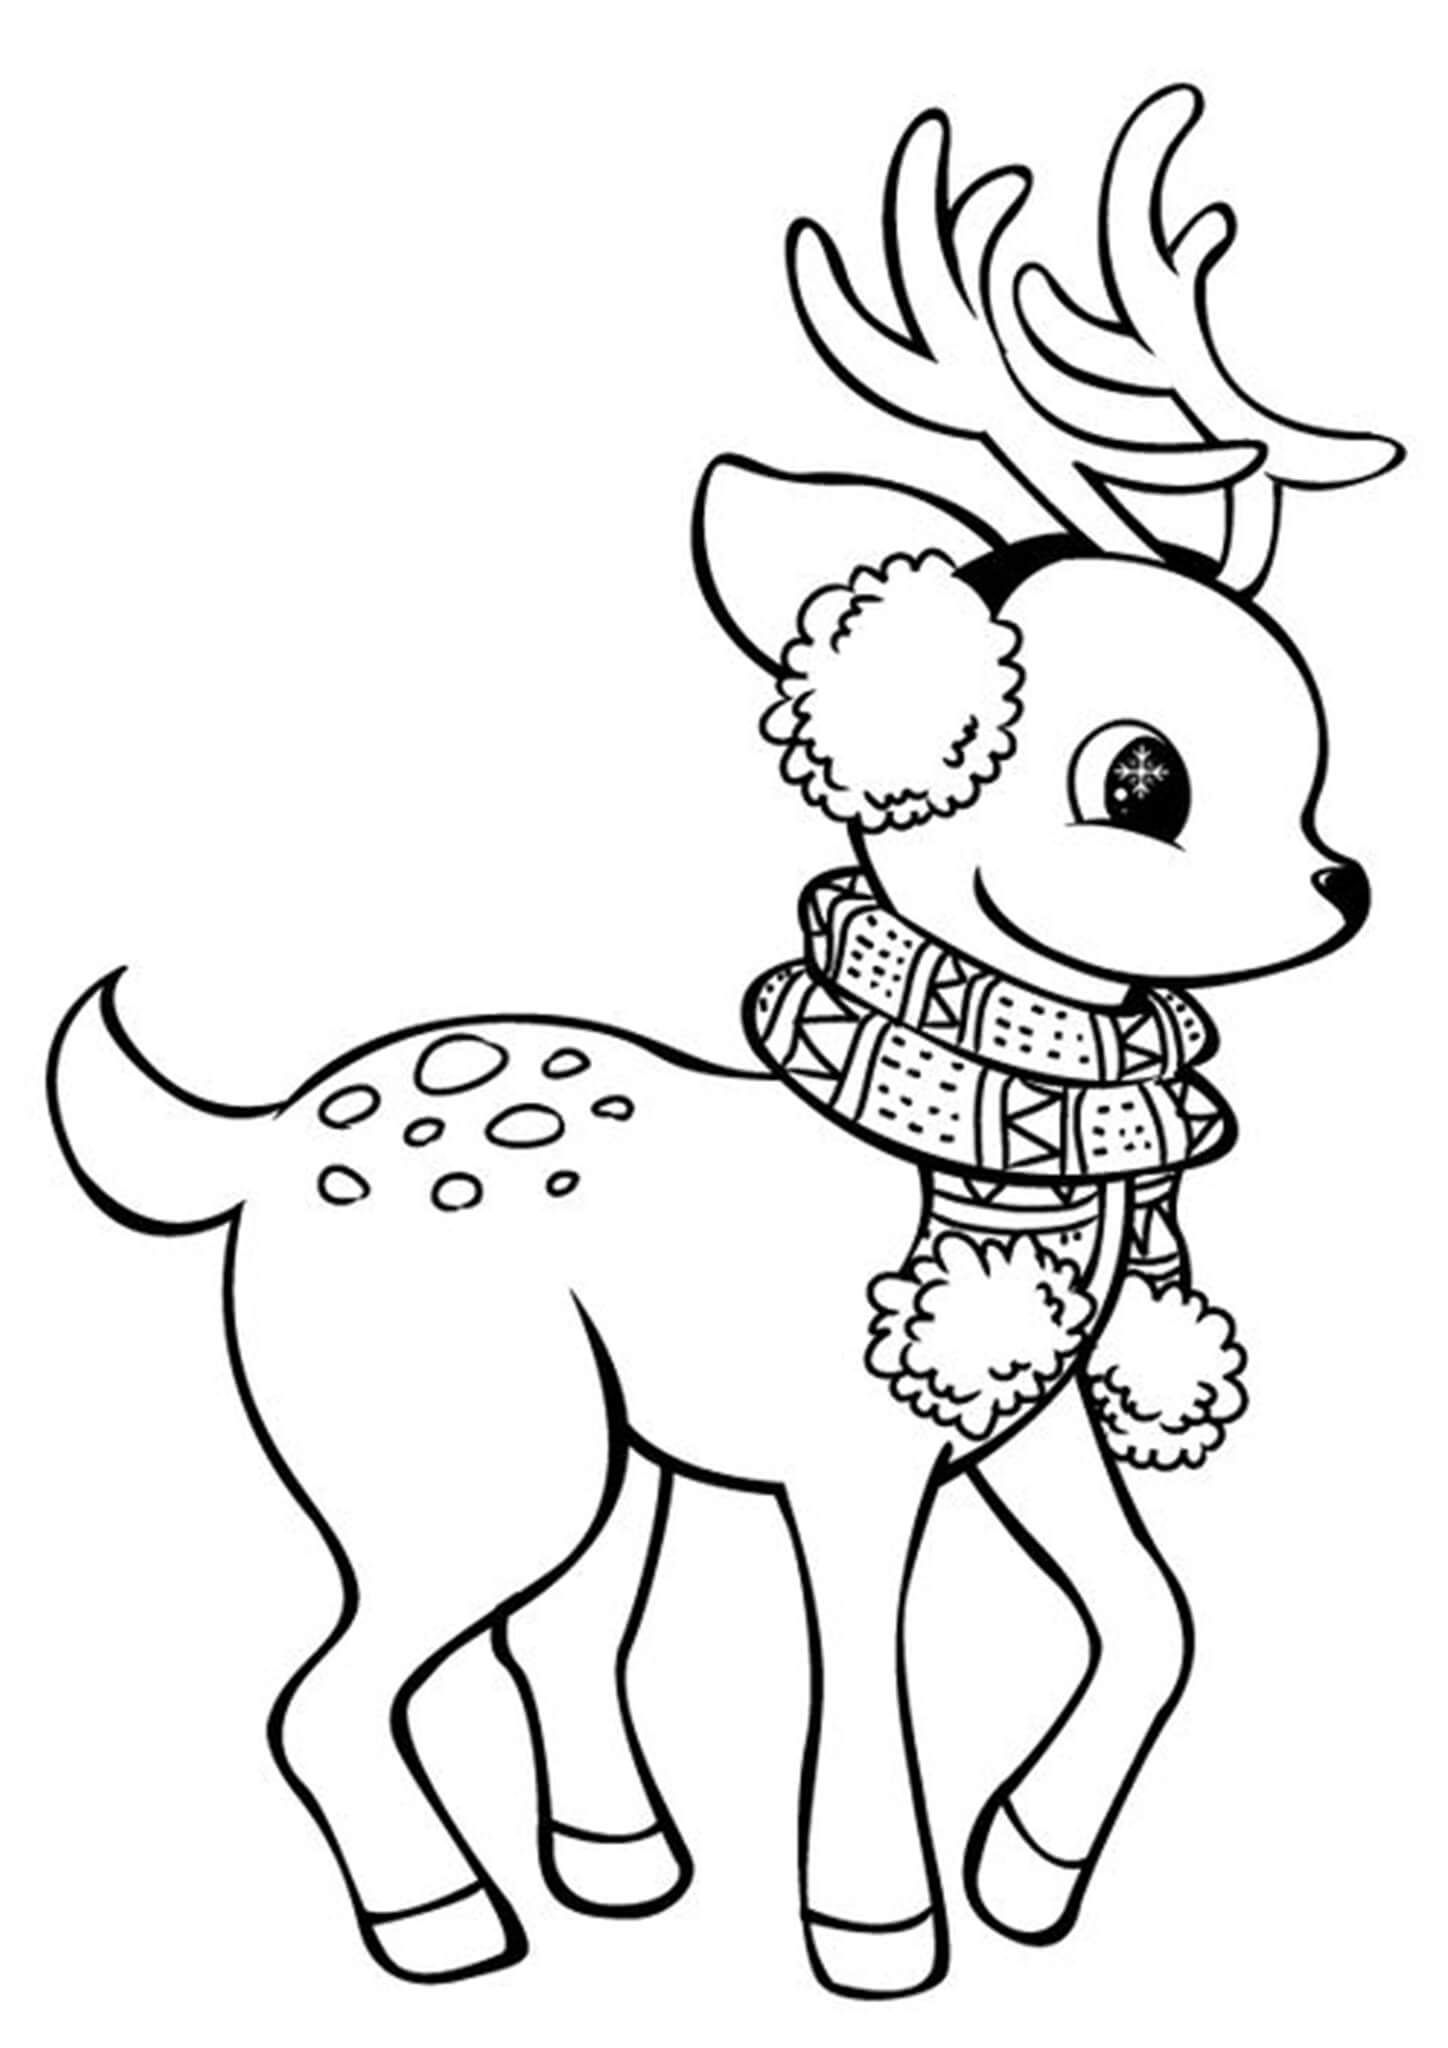 Pin On Raindeer Coloring Pages